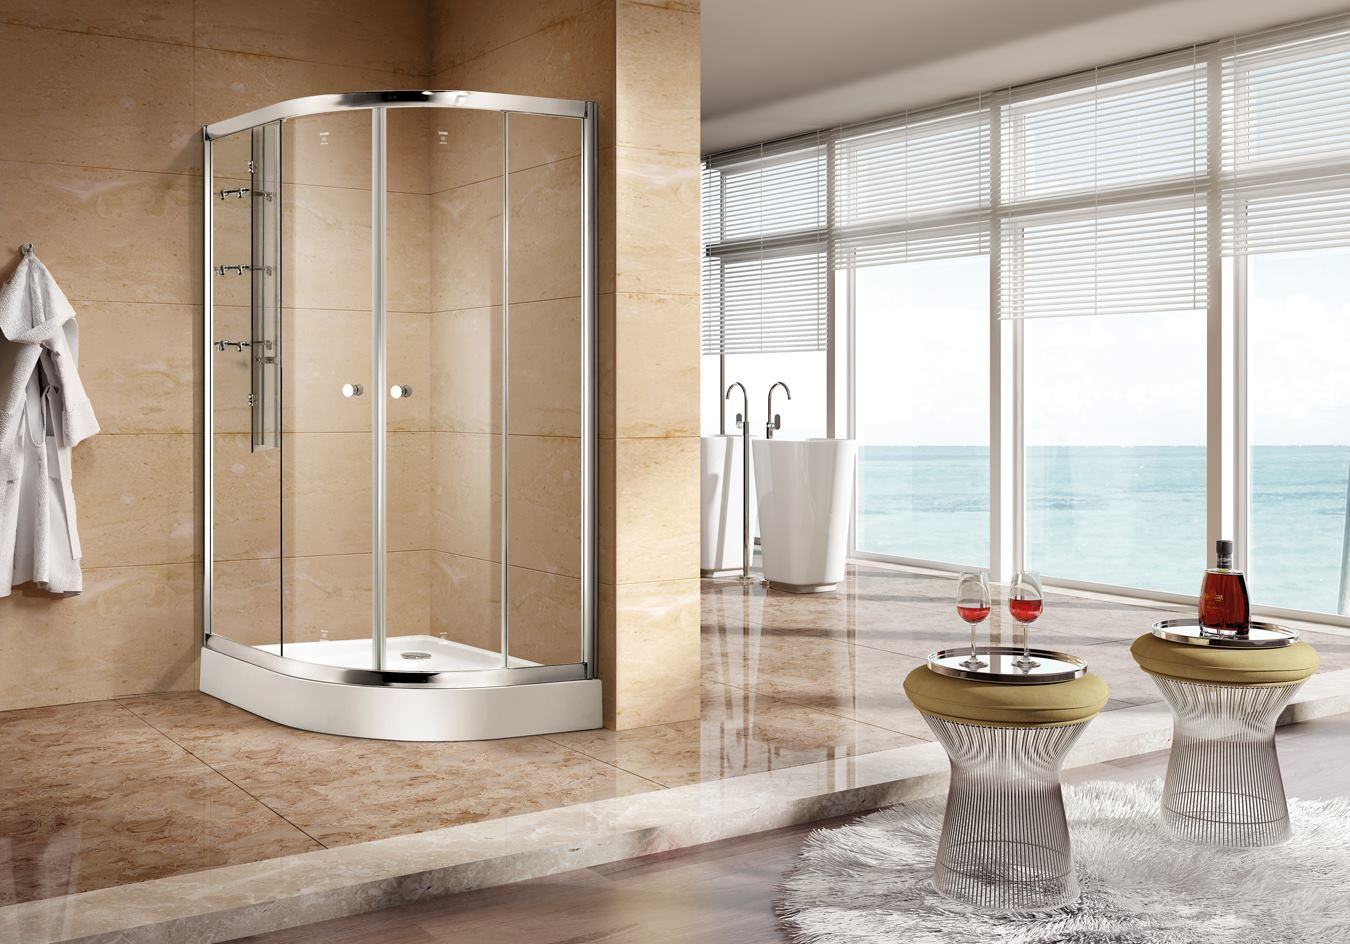 Buy Custom Glass Shower Doors And Shower Enclosures For